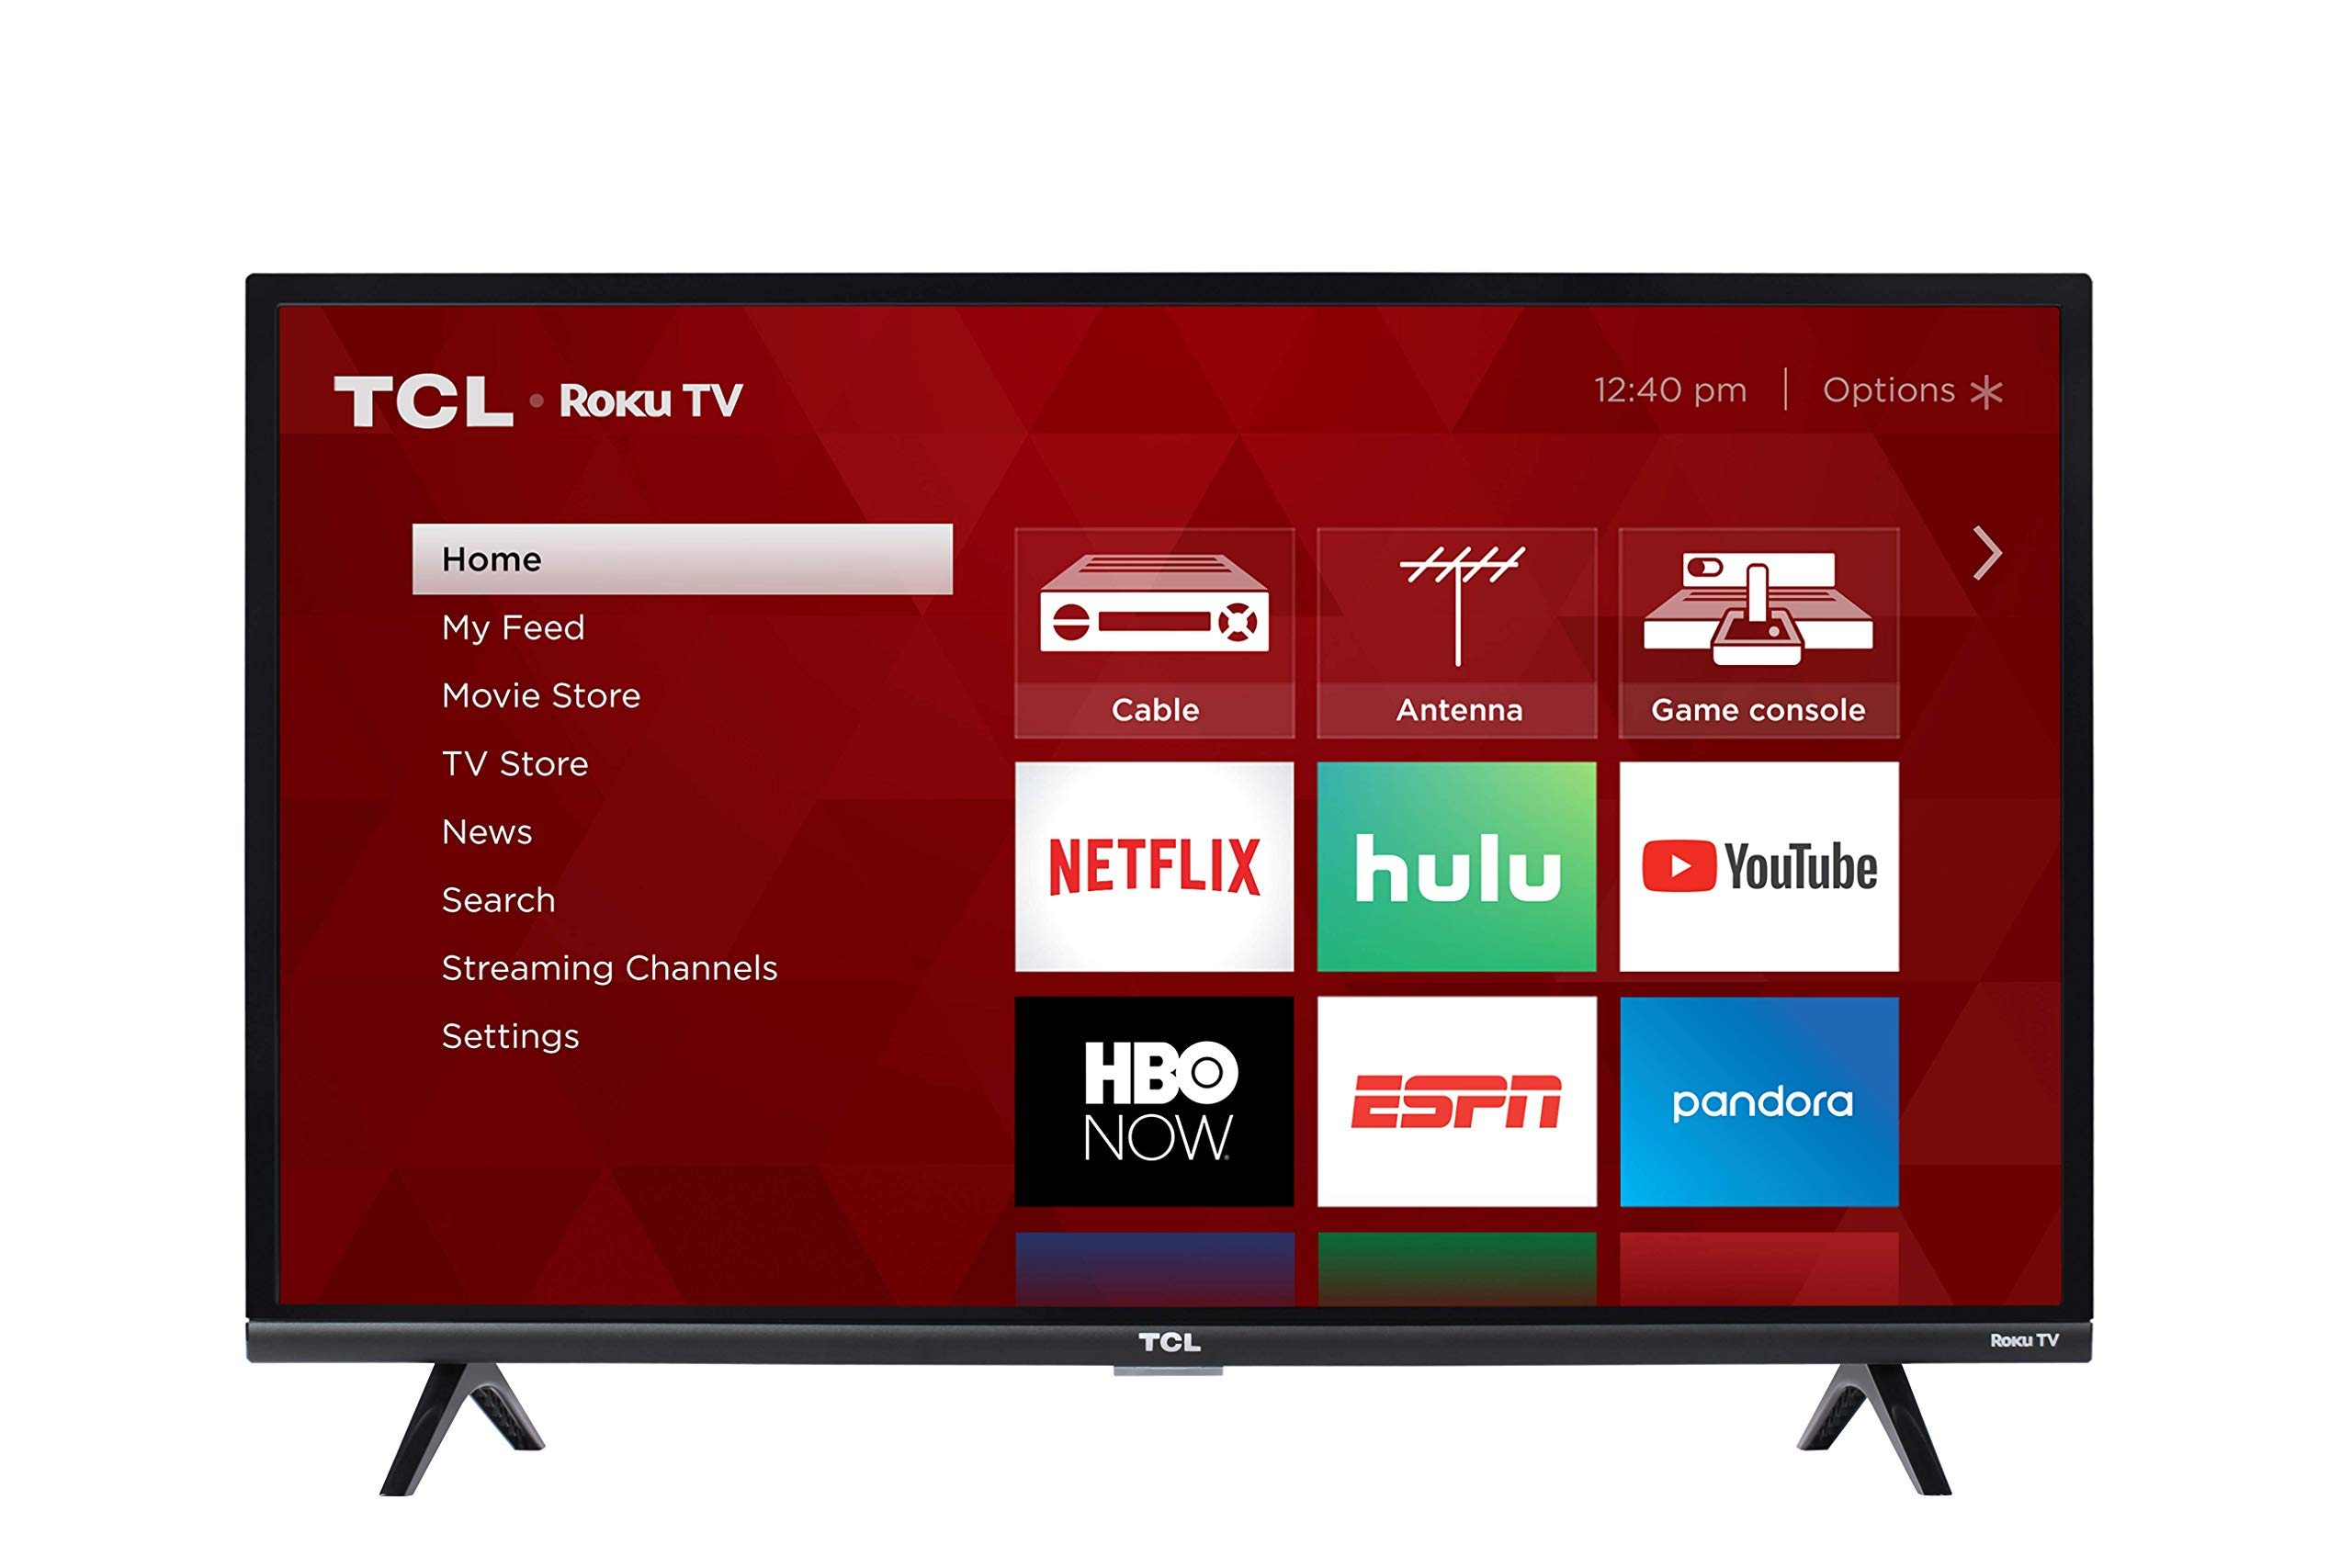 TCL 32S327 32 Inch 1080p Smart